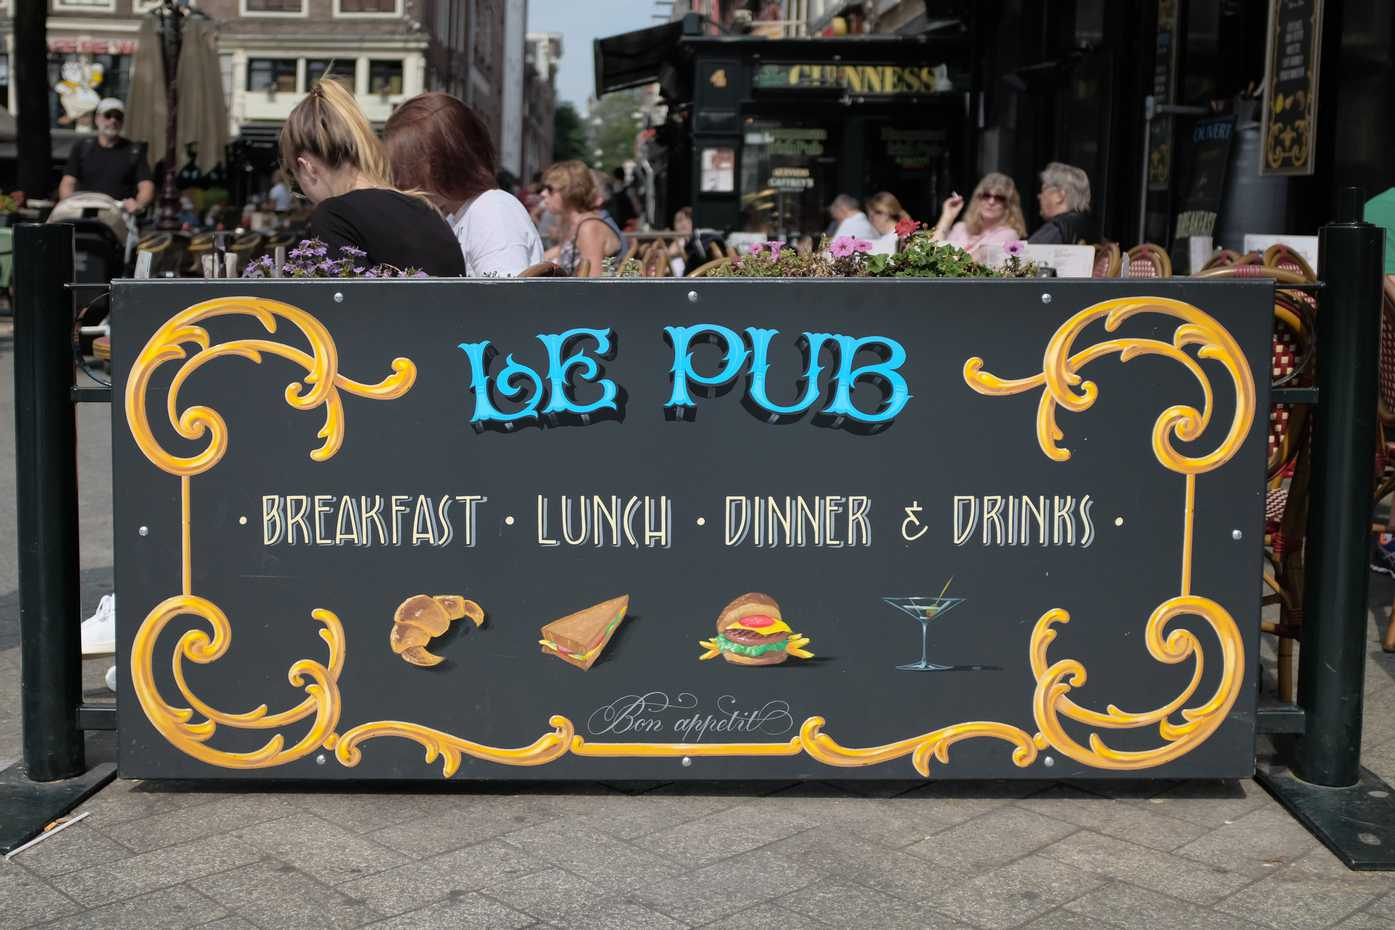 A handpainted sign for a pub with outdoor seating